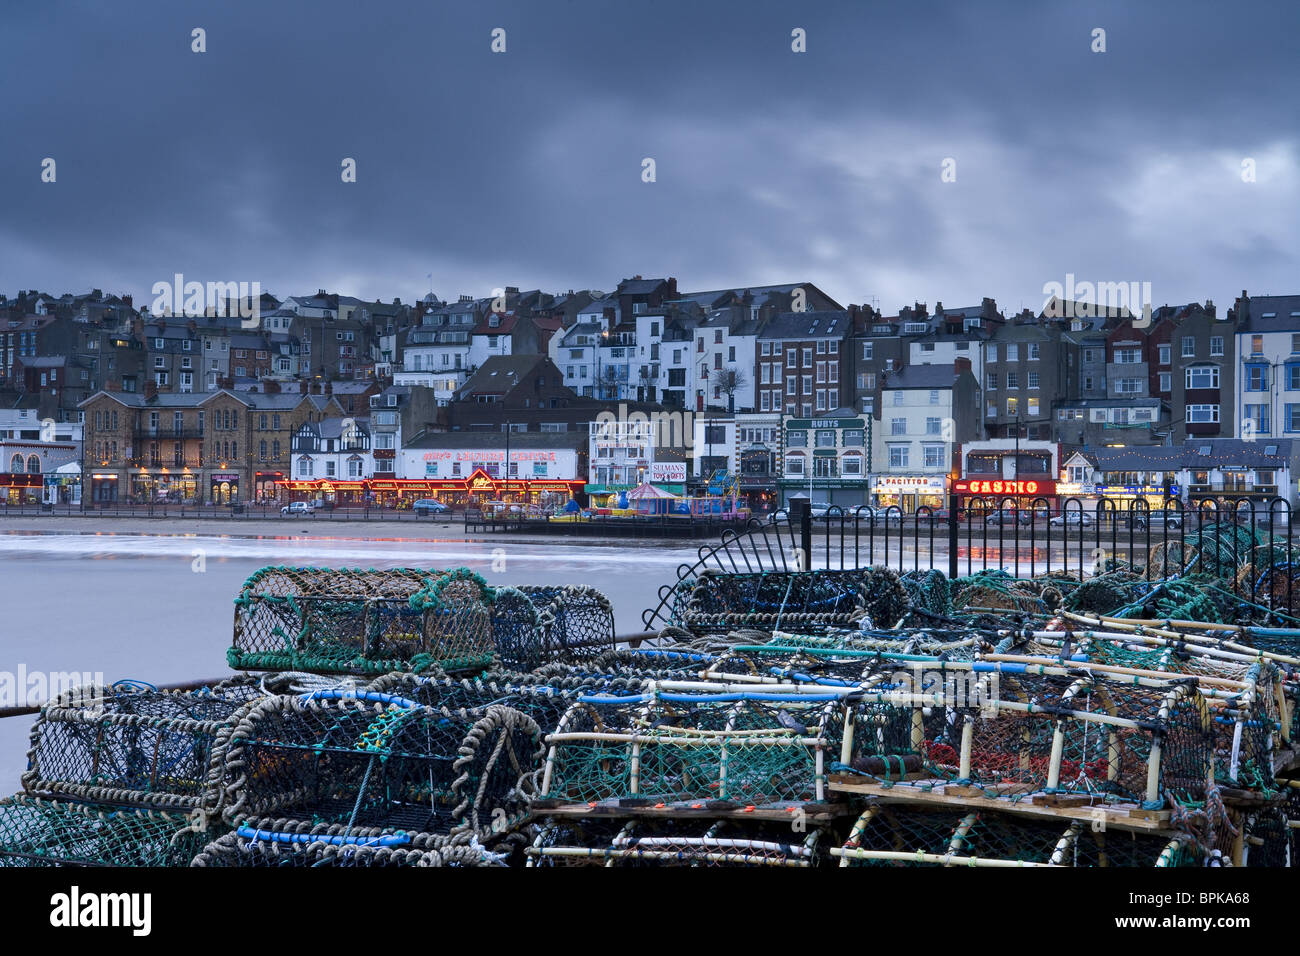 Seaside town of Scarborough, North Yorkshire, England, Great Britain, Europe - Stock Image